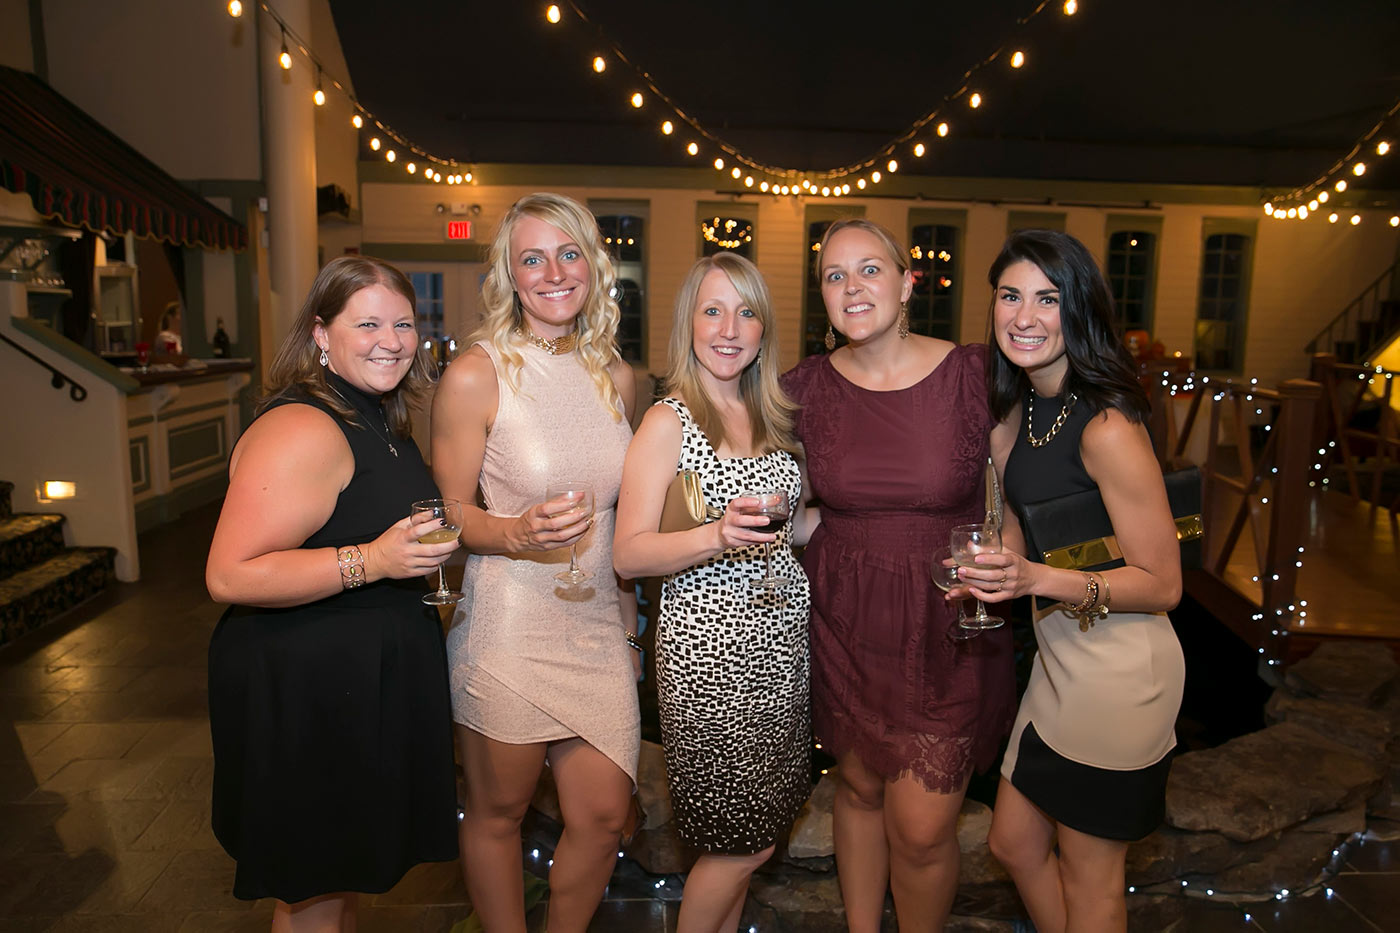 group of young women smiling with wine